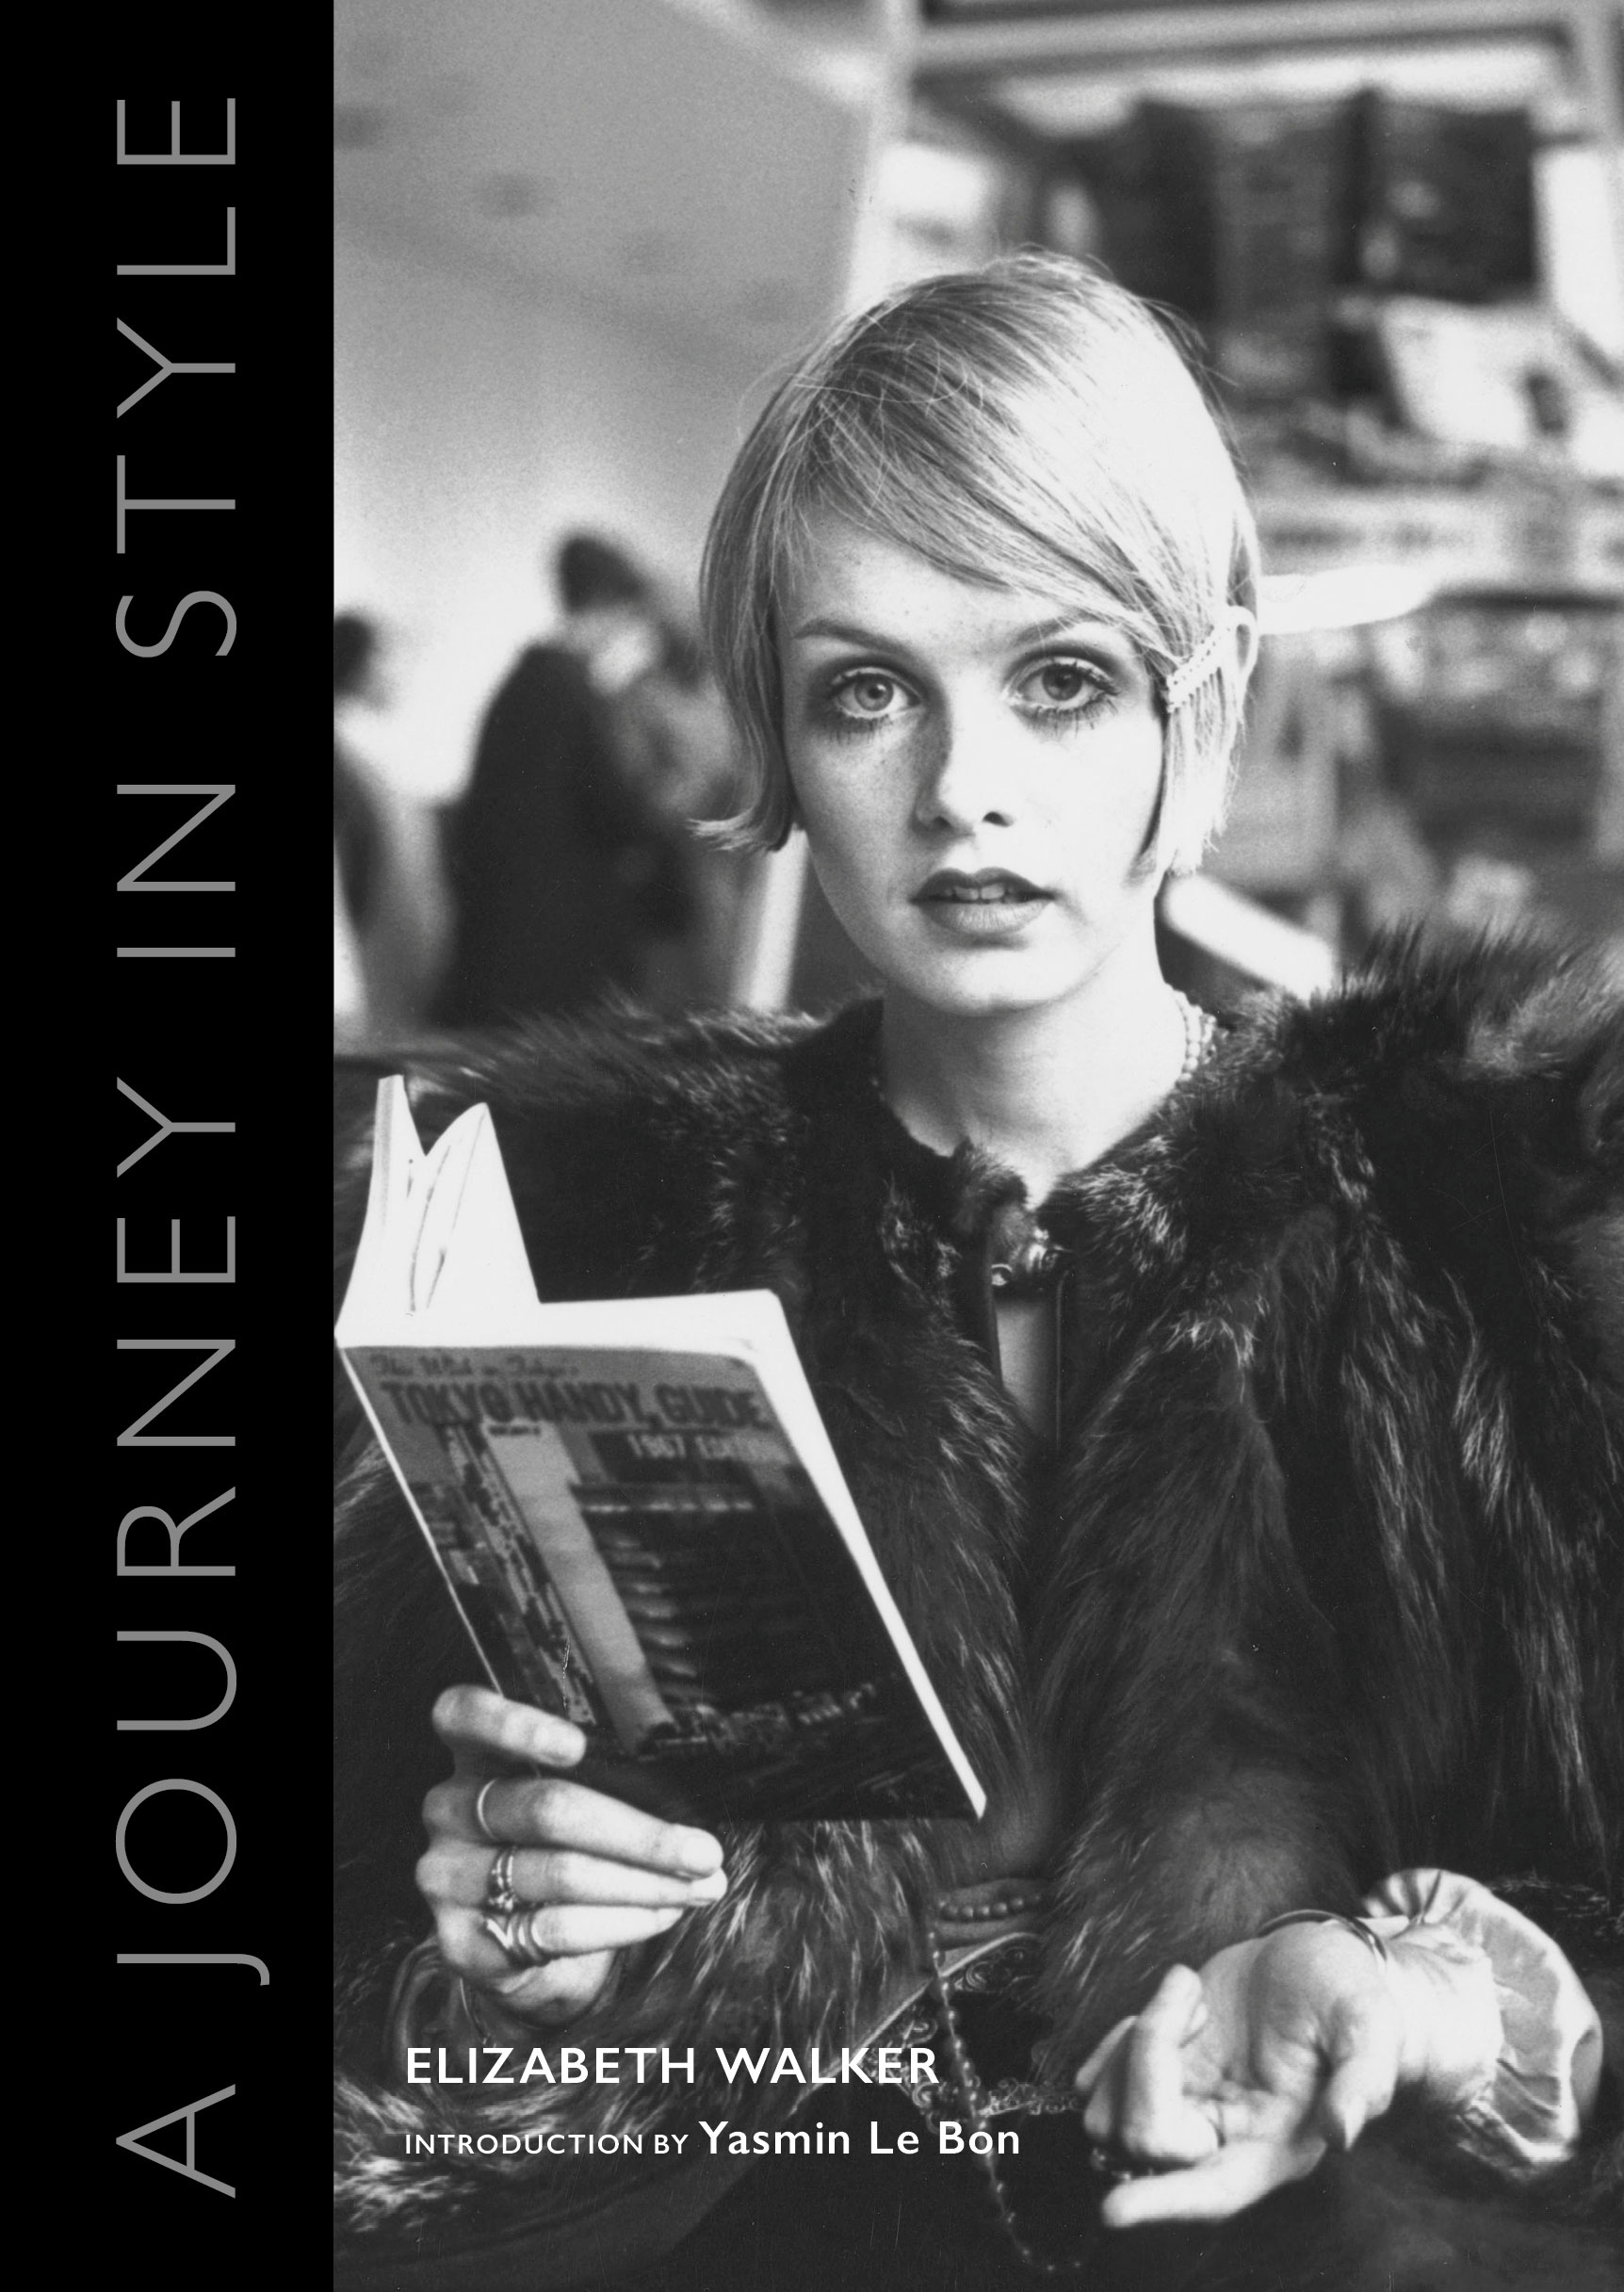 The hardback book, the proceeds of which will go to Oxfam, also features one of the most iconic faces of the Swinging Sixties, Twiggy, on its cover